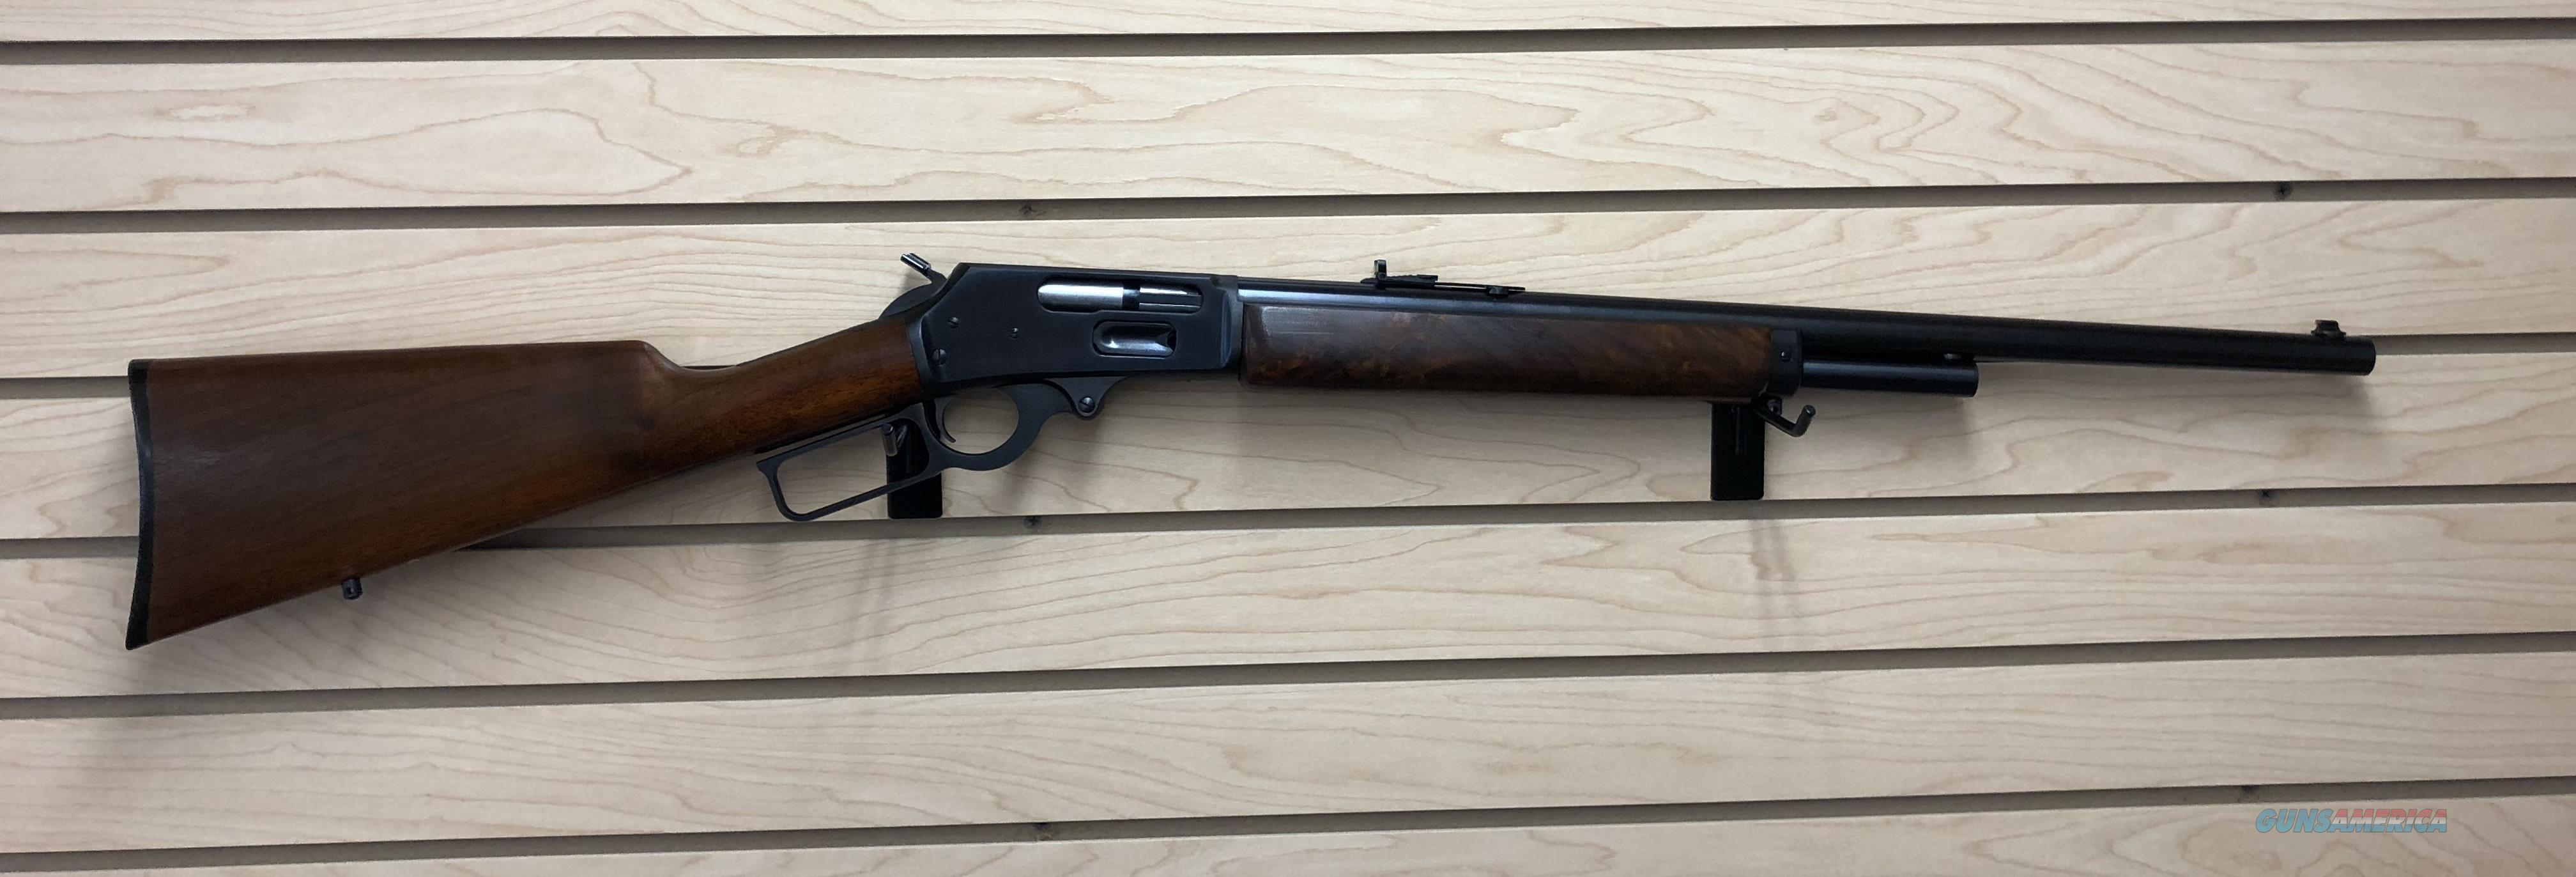 1976 Marlin 1895 JM stamped, Pre-safety, North Haven .45-70  Guns > Rifles > Marlin Rifles > Modern > Lever Action